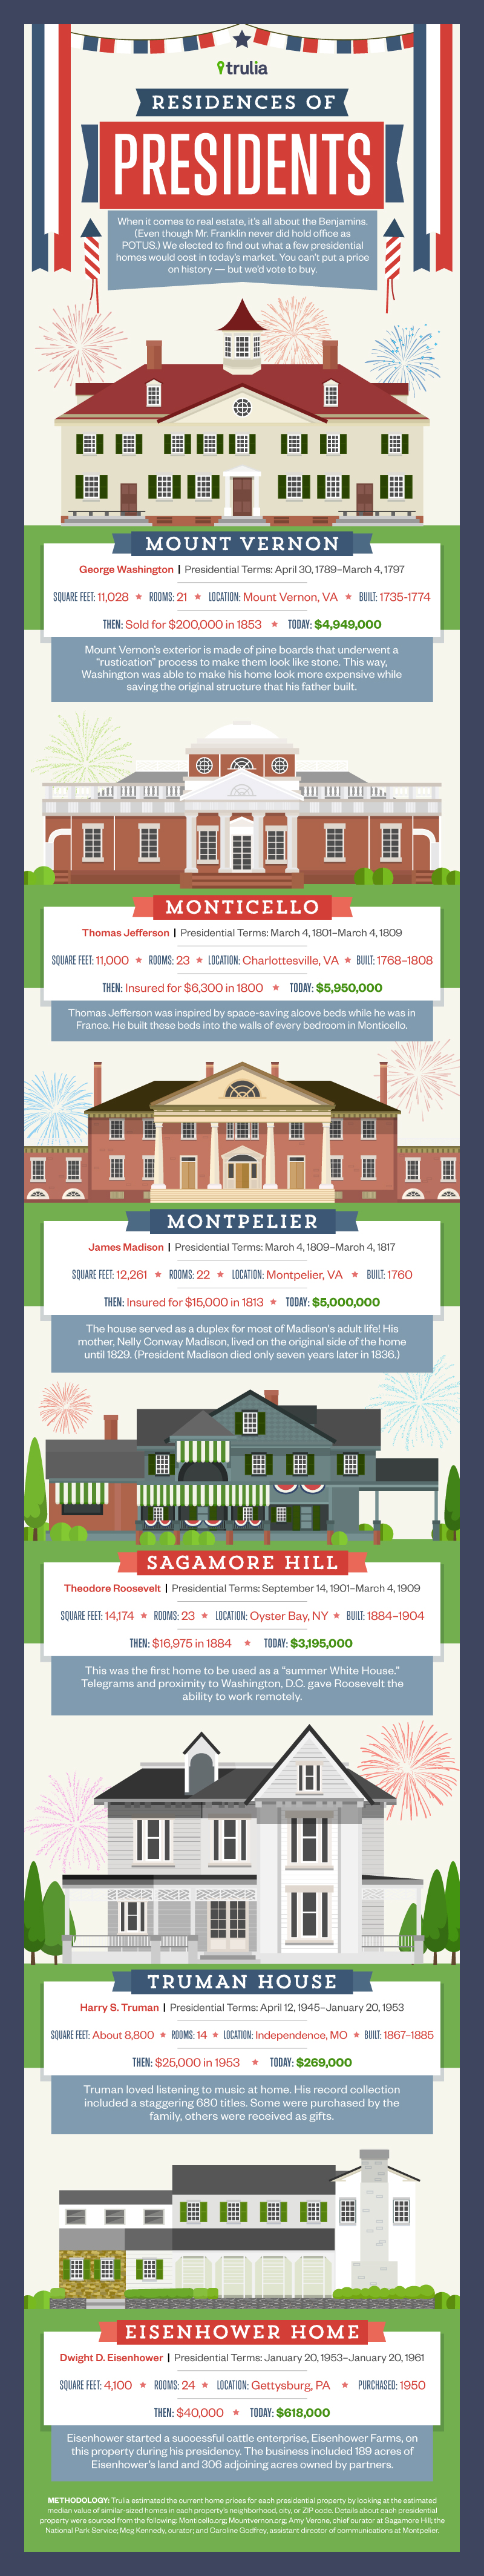 Trulia-Miles-Quillen-Infographic-Residences-Of-Presidents